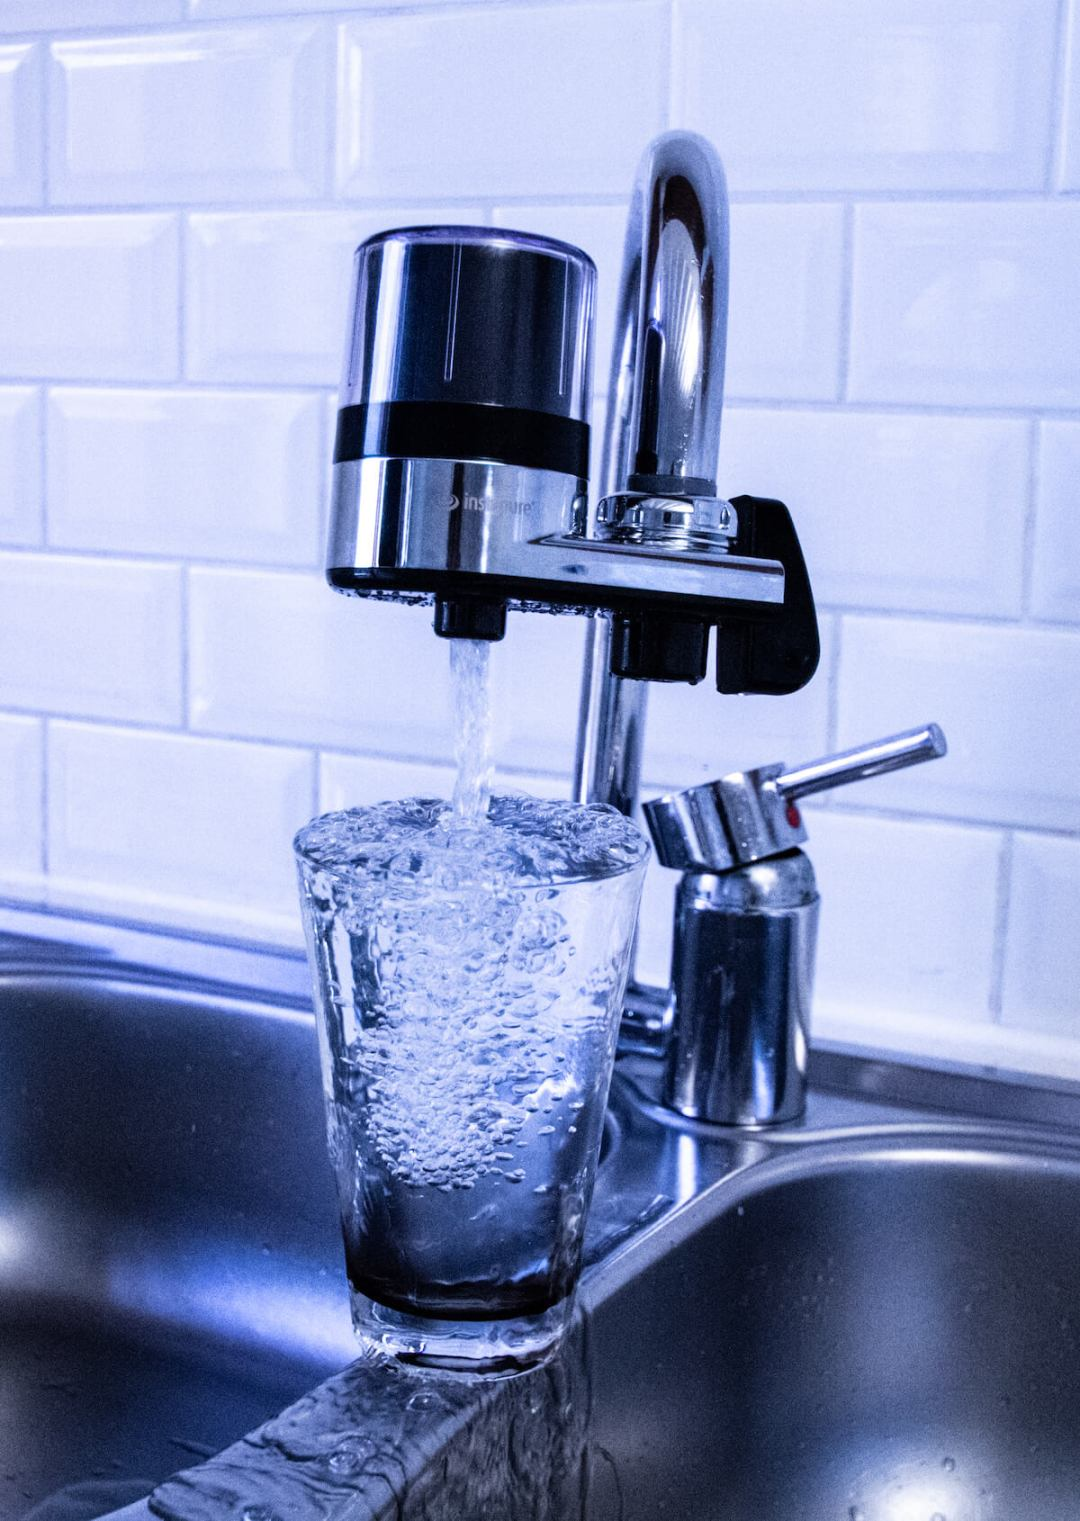 Instapure tap water filter. Household and kitchen water filter. Formerly Waterpik tap filter